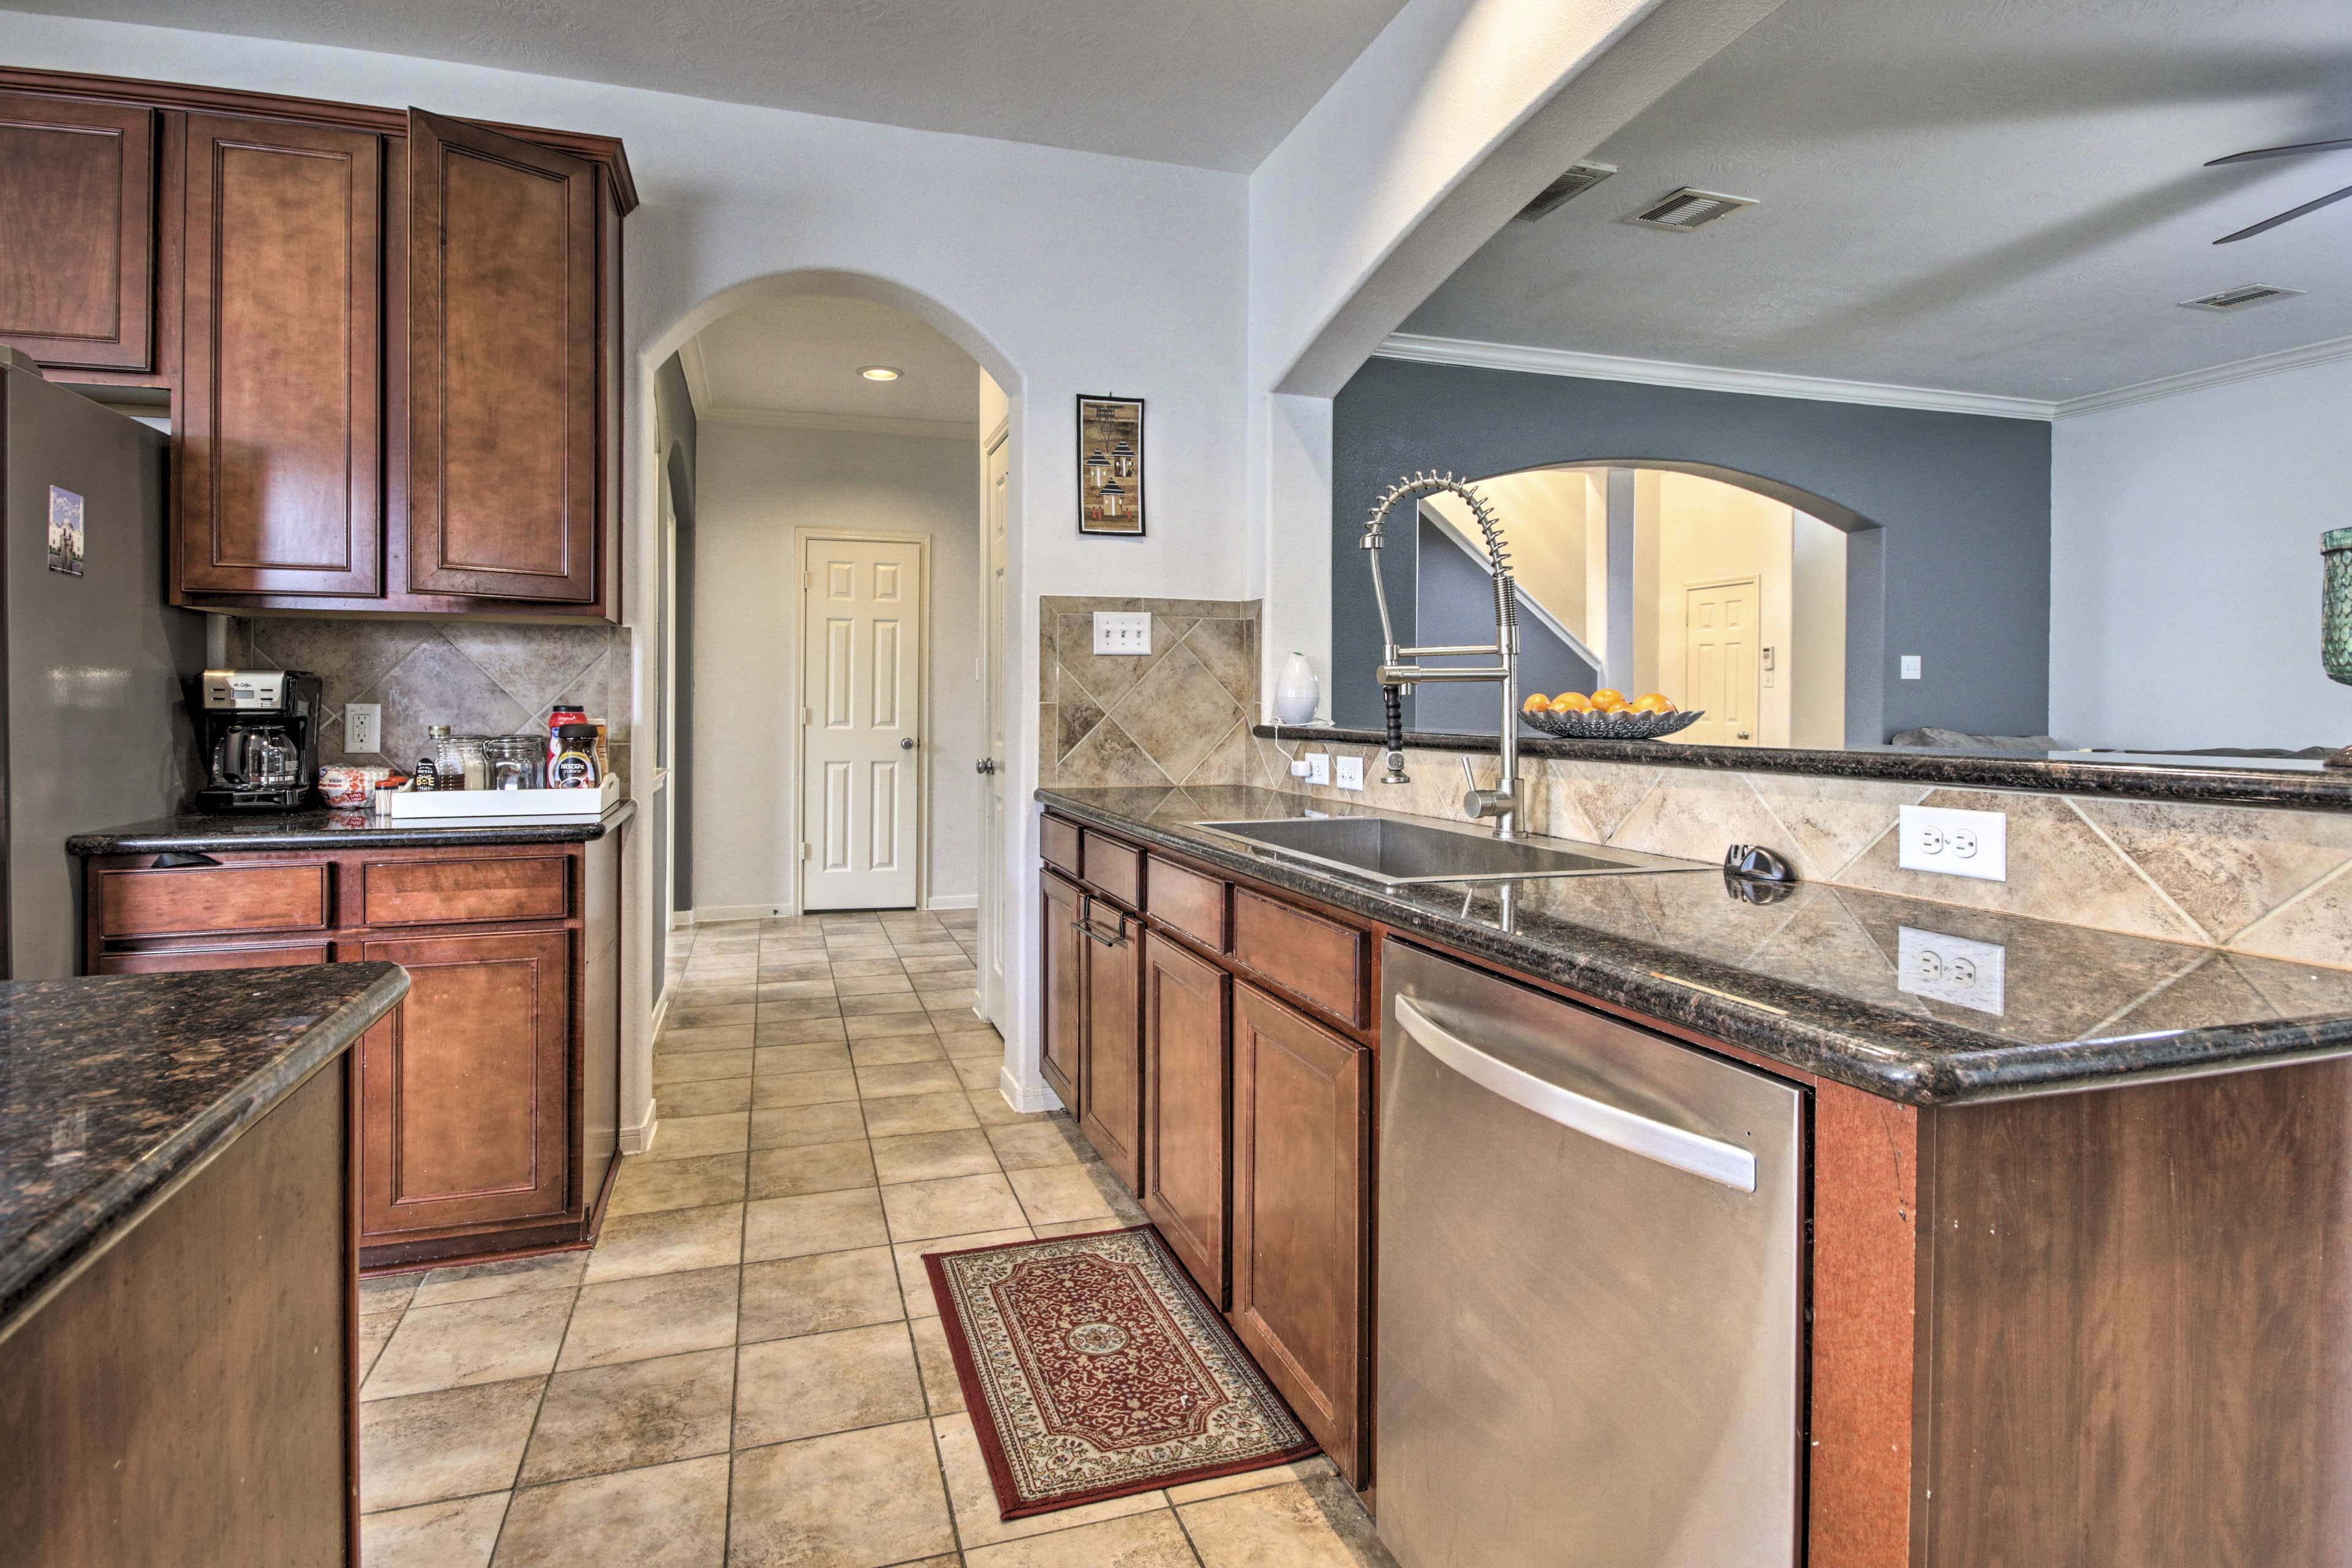 All the essentials are provided in the kitchen, including a dishwasher!